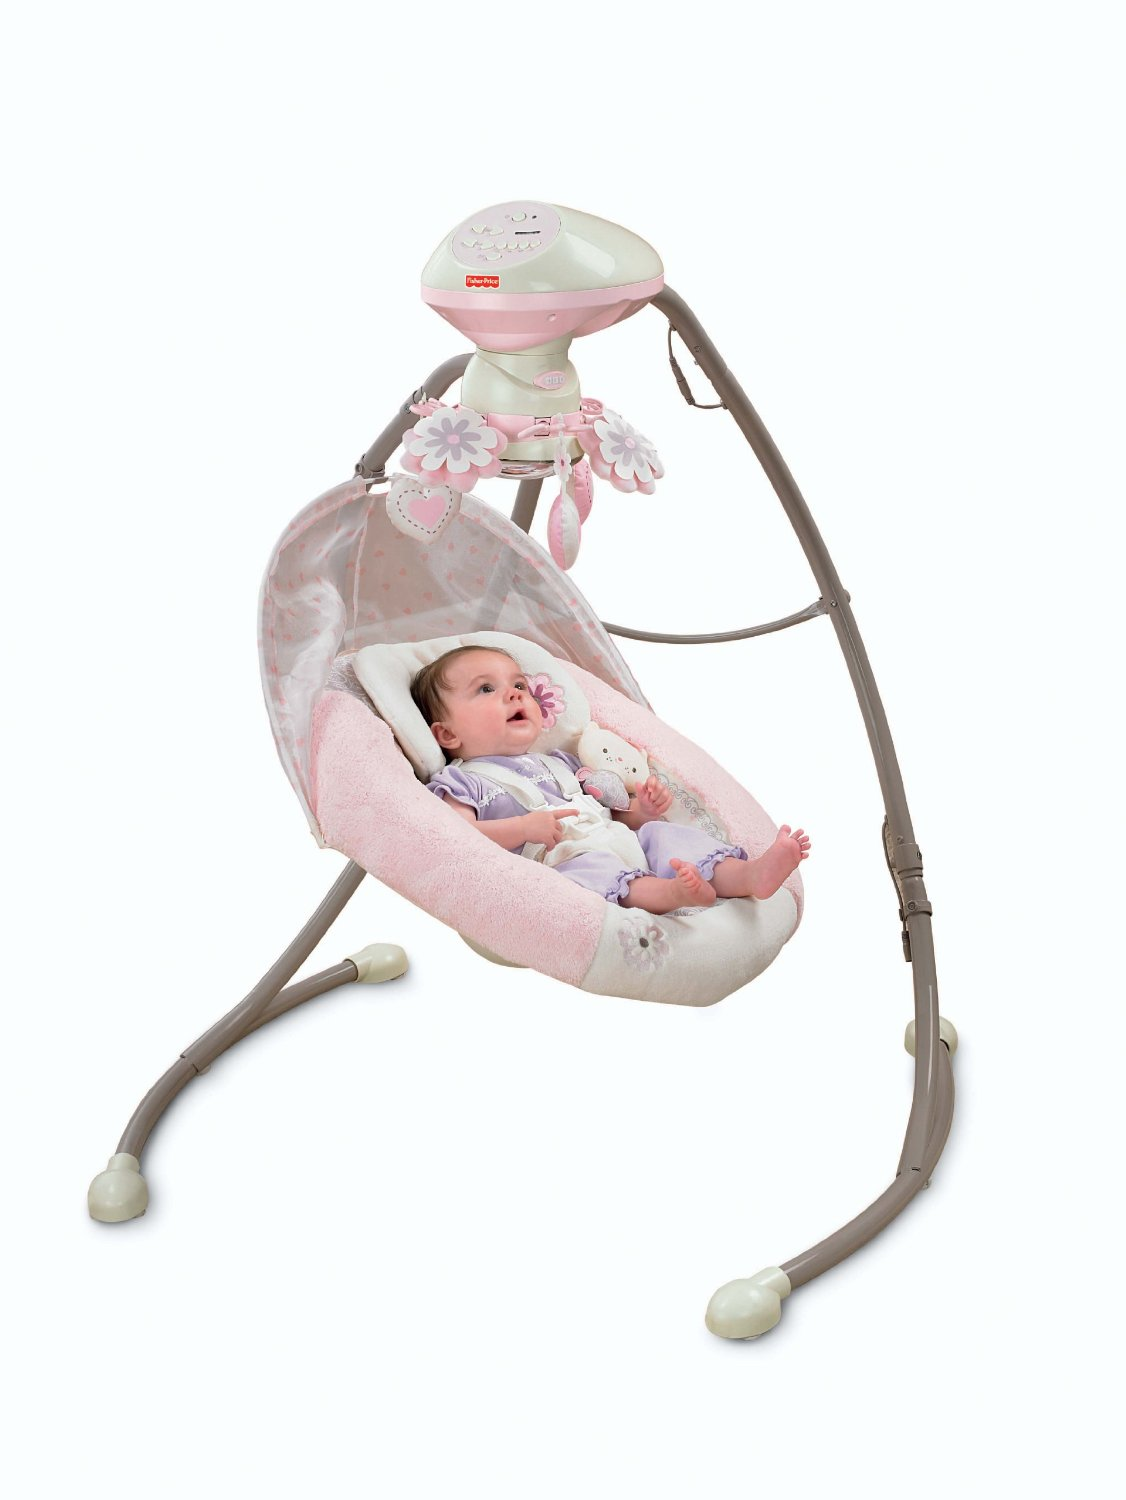 Baby Chair Swinging Model No Ts Bs 16 Outdoor Director Replacement Canvas Fisher Price Cradle 39n Swing Gtmy Little Sweetie Foryoubaby848